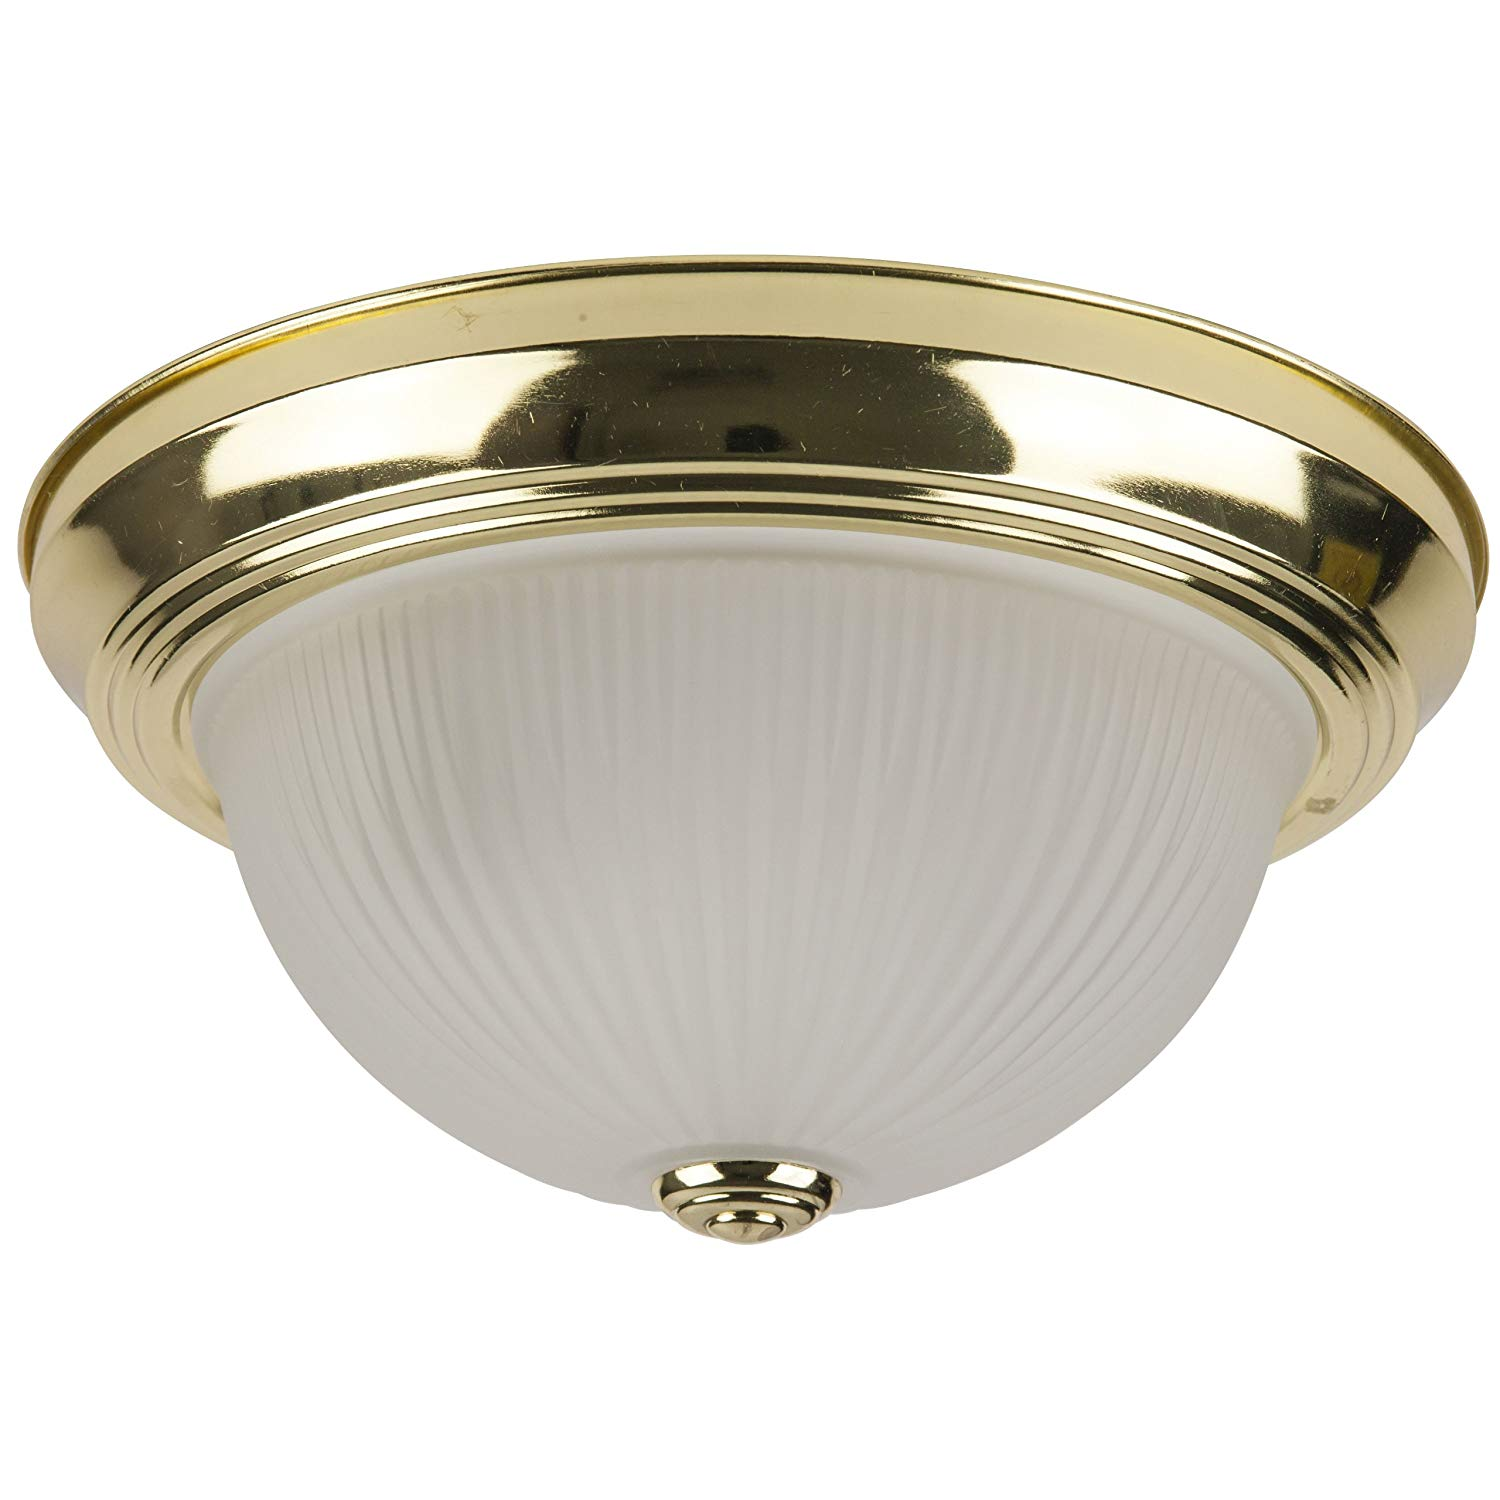 Sunlite DBS11/FR 11-Inch Dome Ceiling Fixture, Polished Brass Finish with Frosted Glass